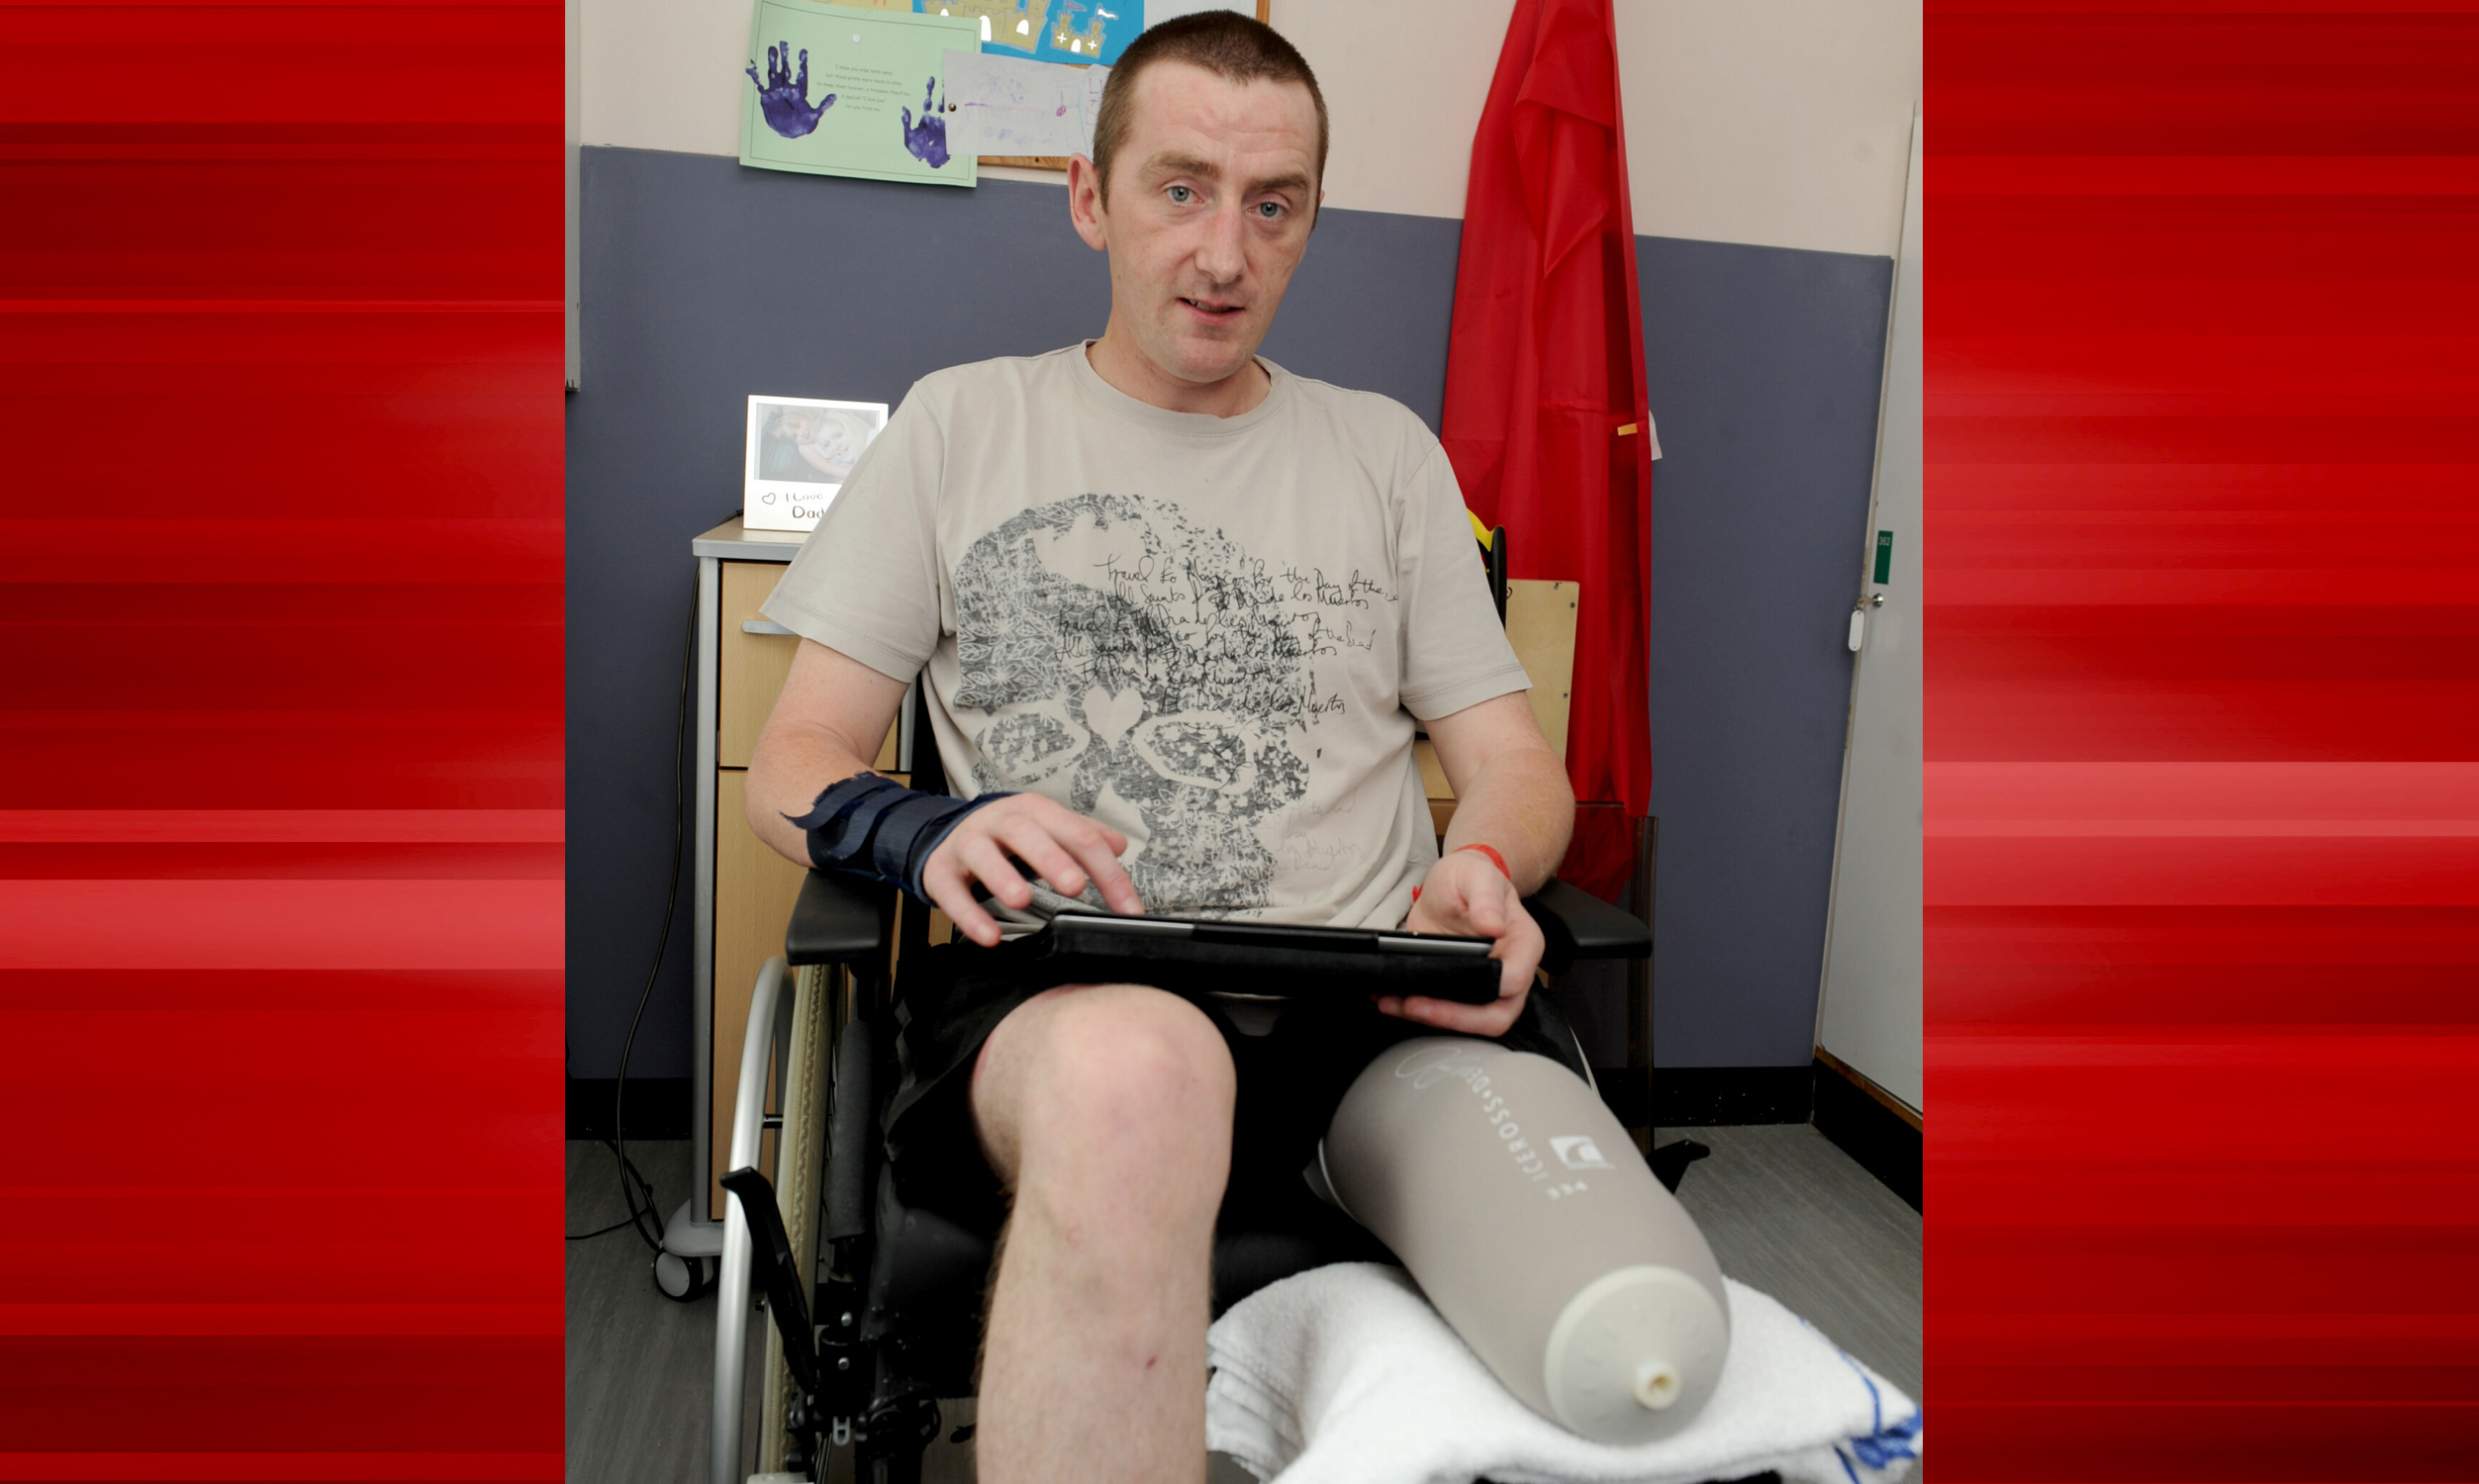 Greig Yorke during his time in Ninewells Hospital